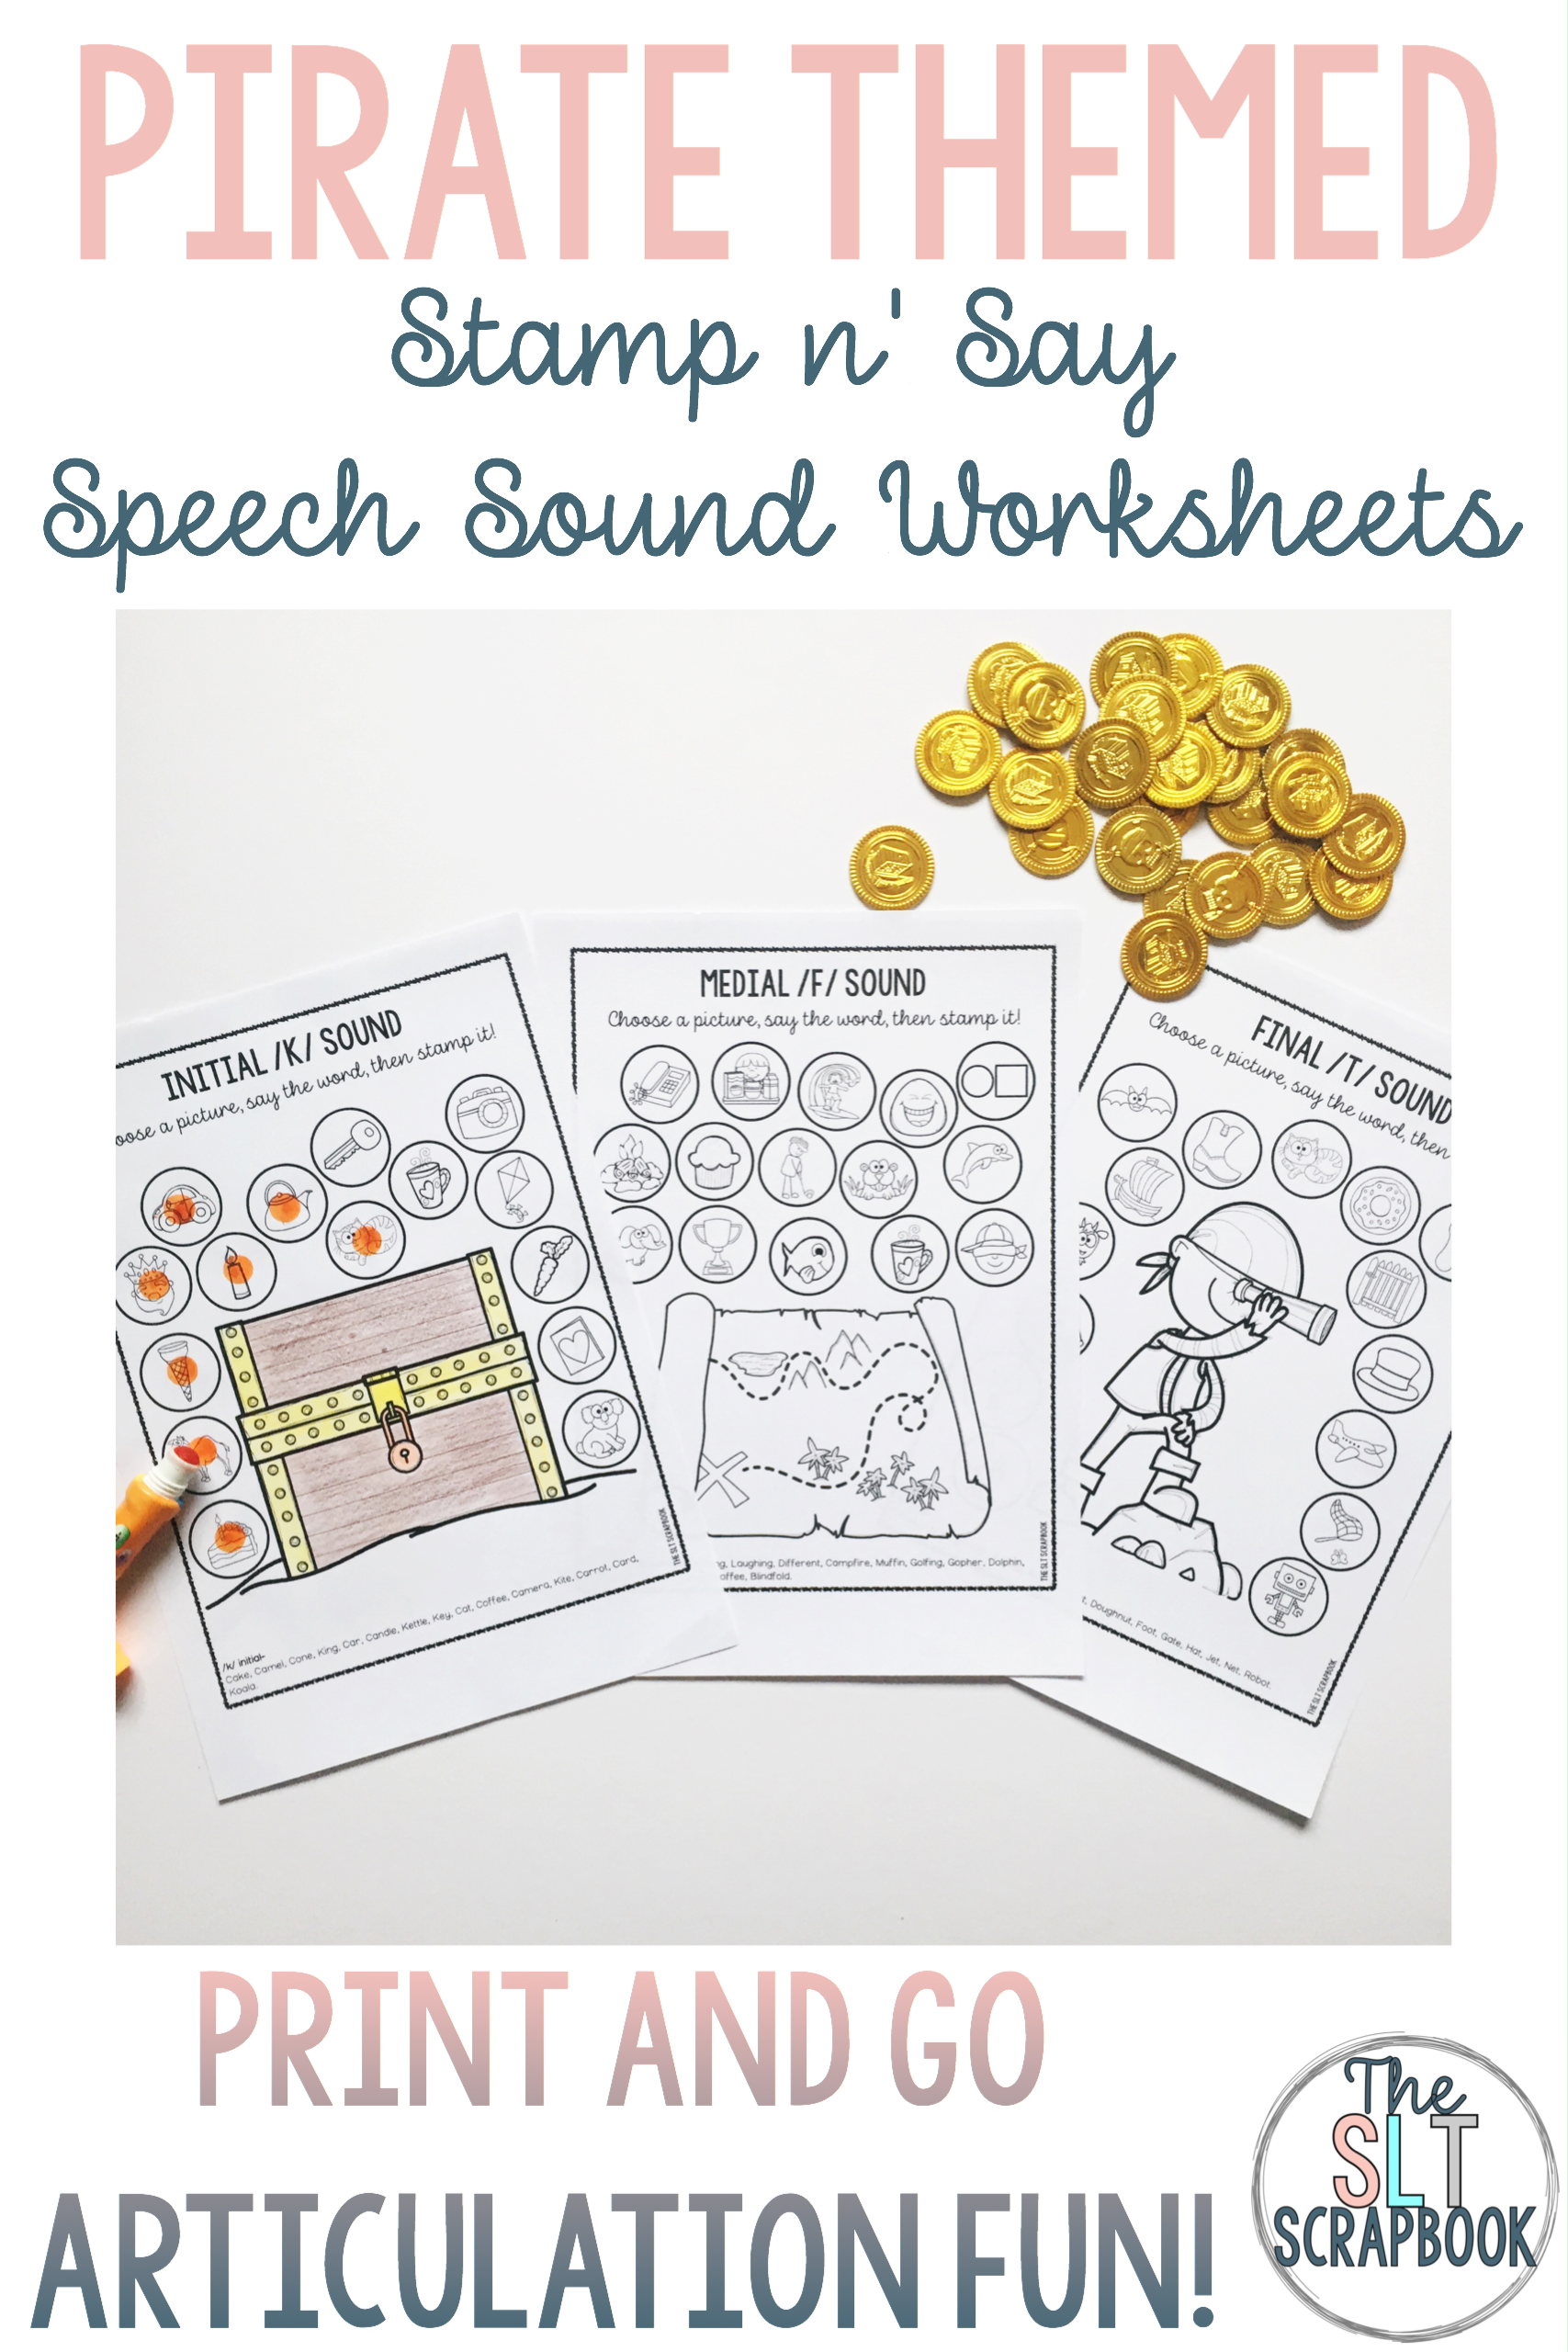 Pirate Themed Speech Sound Worksheets No Prep